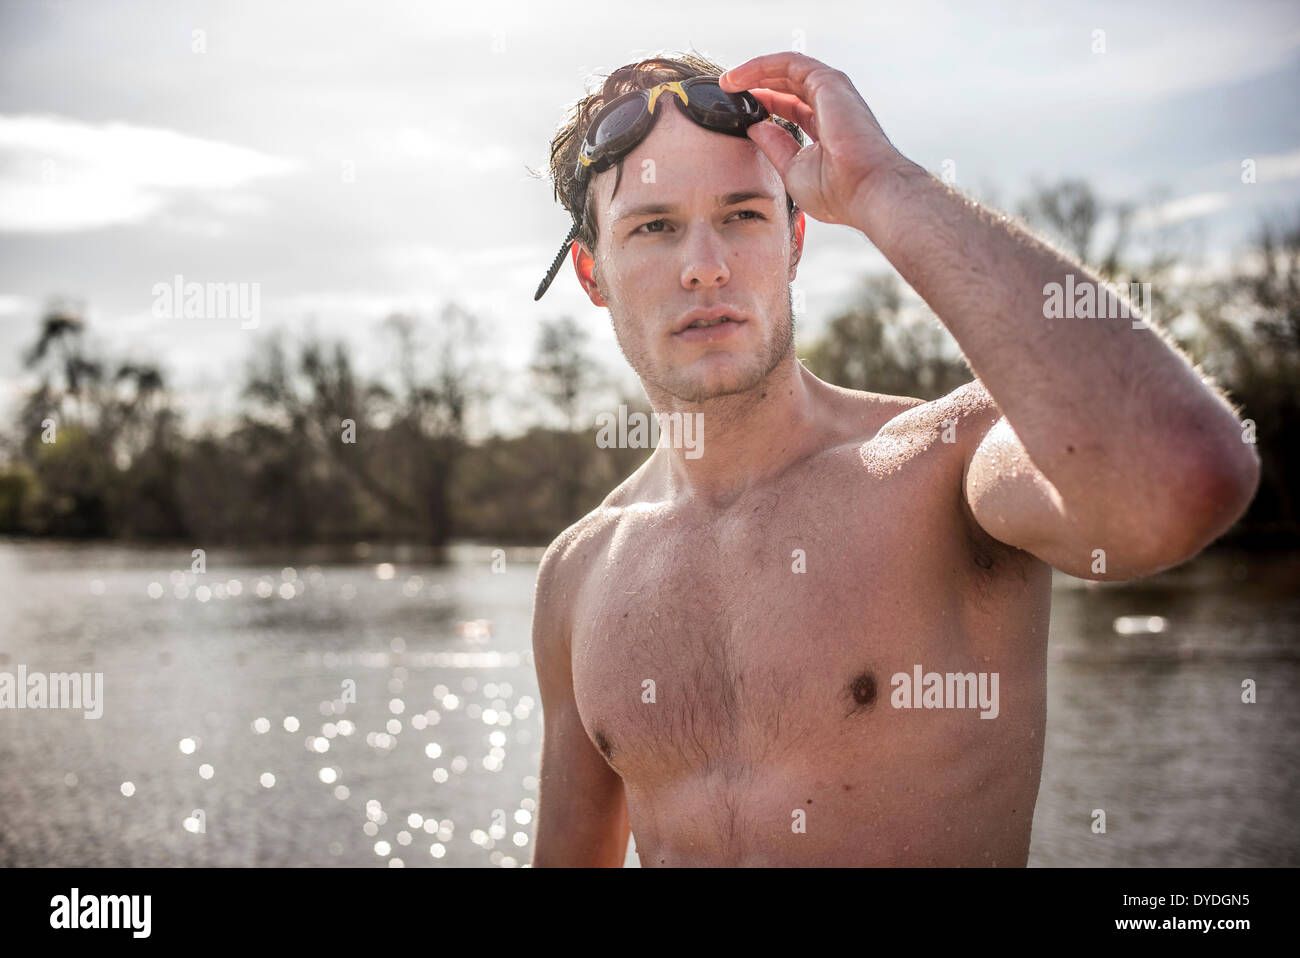 A young man in swimming trunks next to spring fresh water ponds. - Stock Image